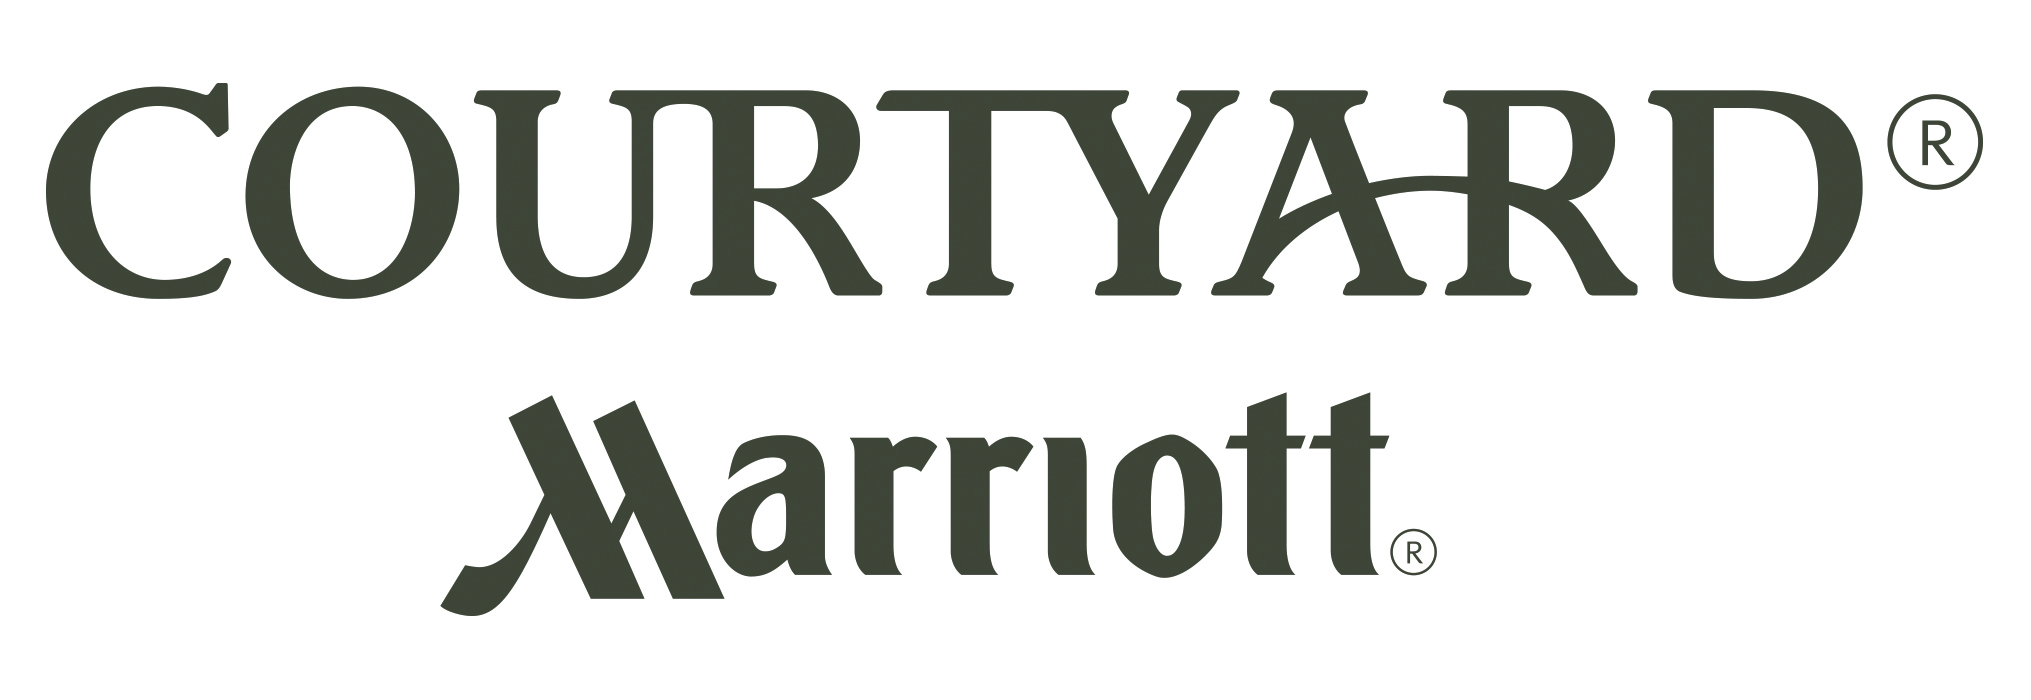 Courtyard Marriott_LOGO_CMYK.jpg